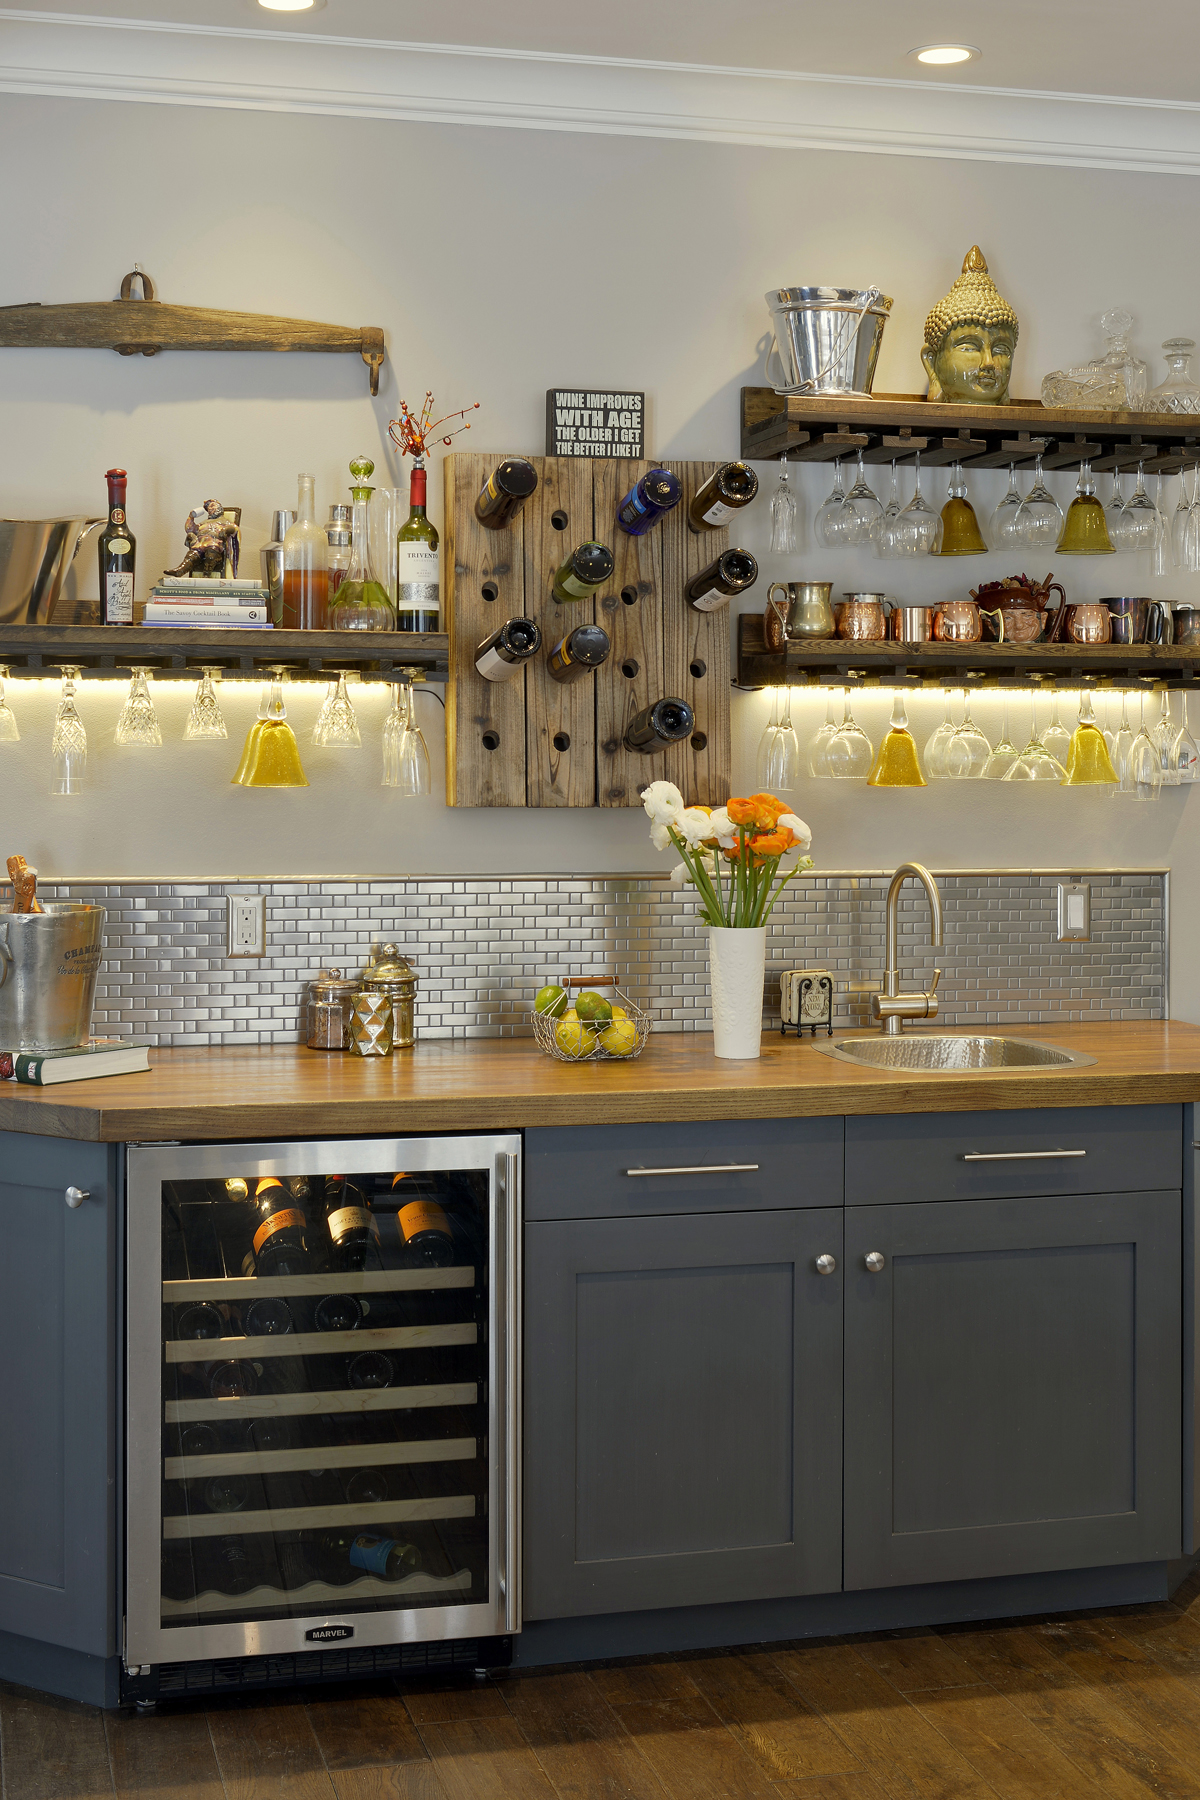 Wet bar features custom grey painted shaker style frameless cabinetry with round satin stainless hardware, textured metal backsplash, butcherblock countertop and rustic floating shelves for glassware and copper vessles. Design by Paulette Gambacorta of Bilotta Kitchens.